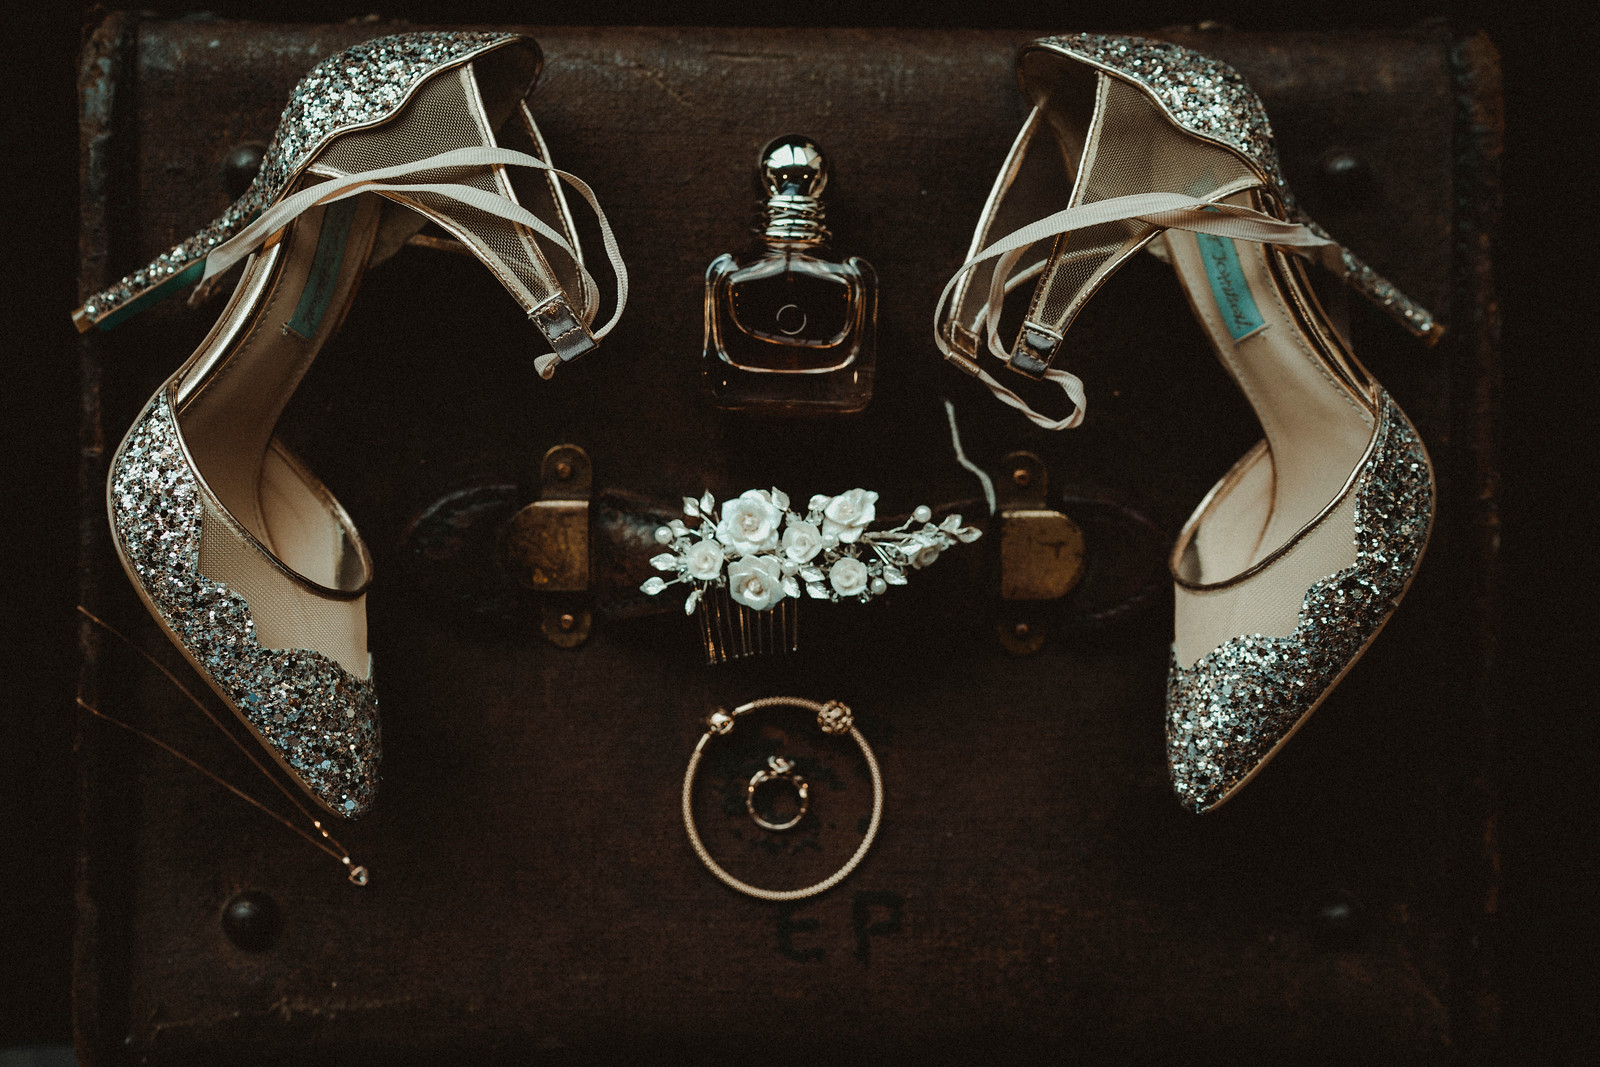 Brides wedding shoes and jewellery